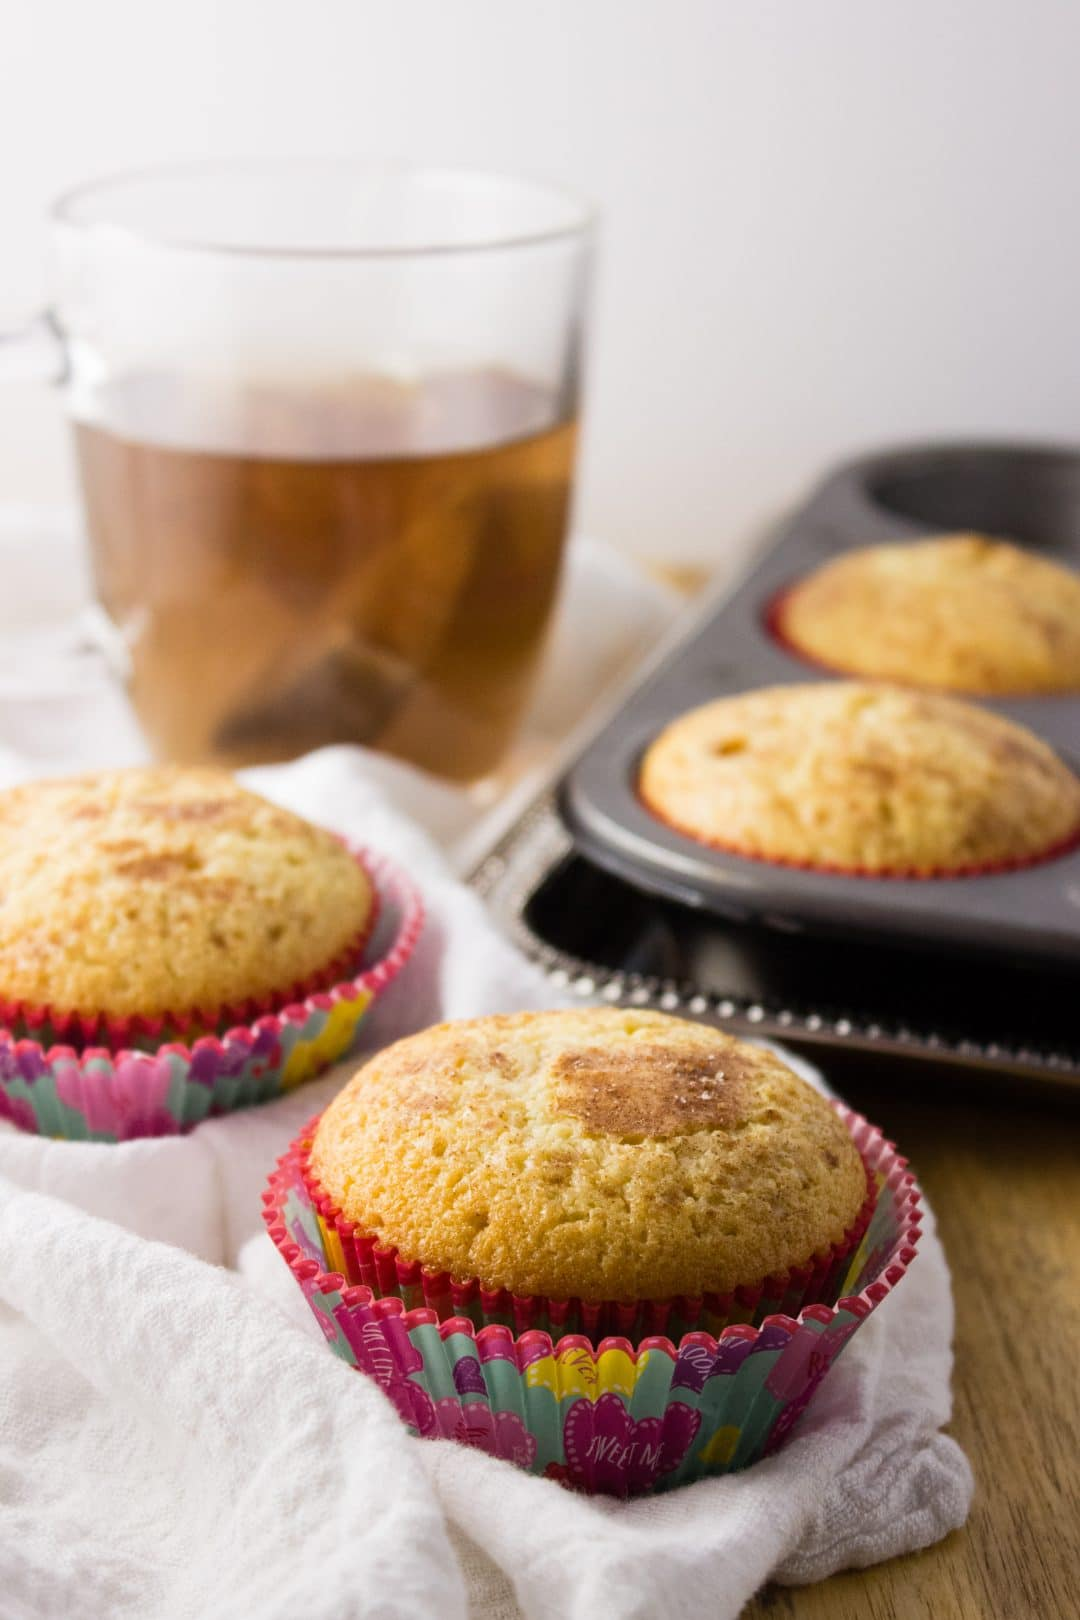 Coffee Cake Muffins - This small batch of muffins transforms classic coffee cake with a cinnamon streusel topping in the center for the perfect treat. simplylakita.com #muffins